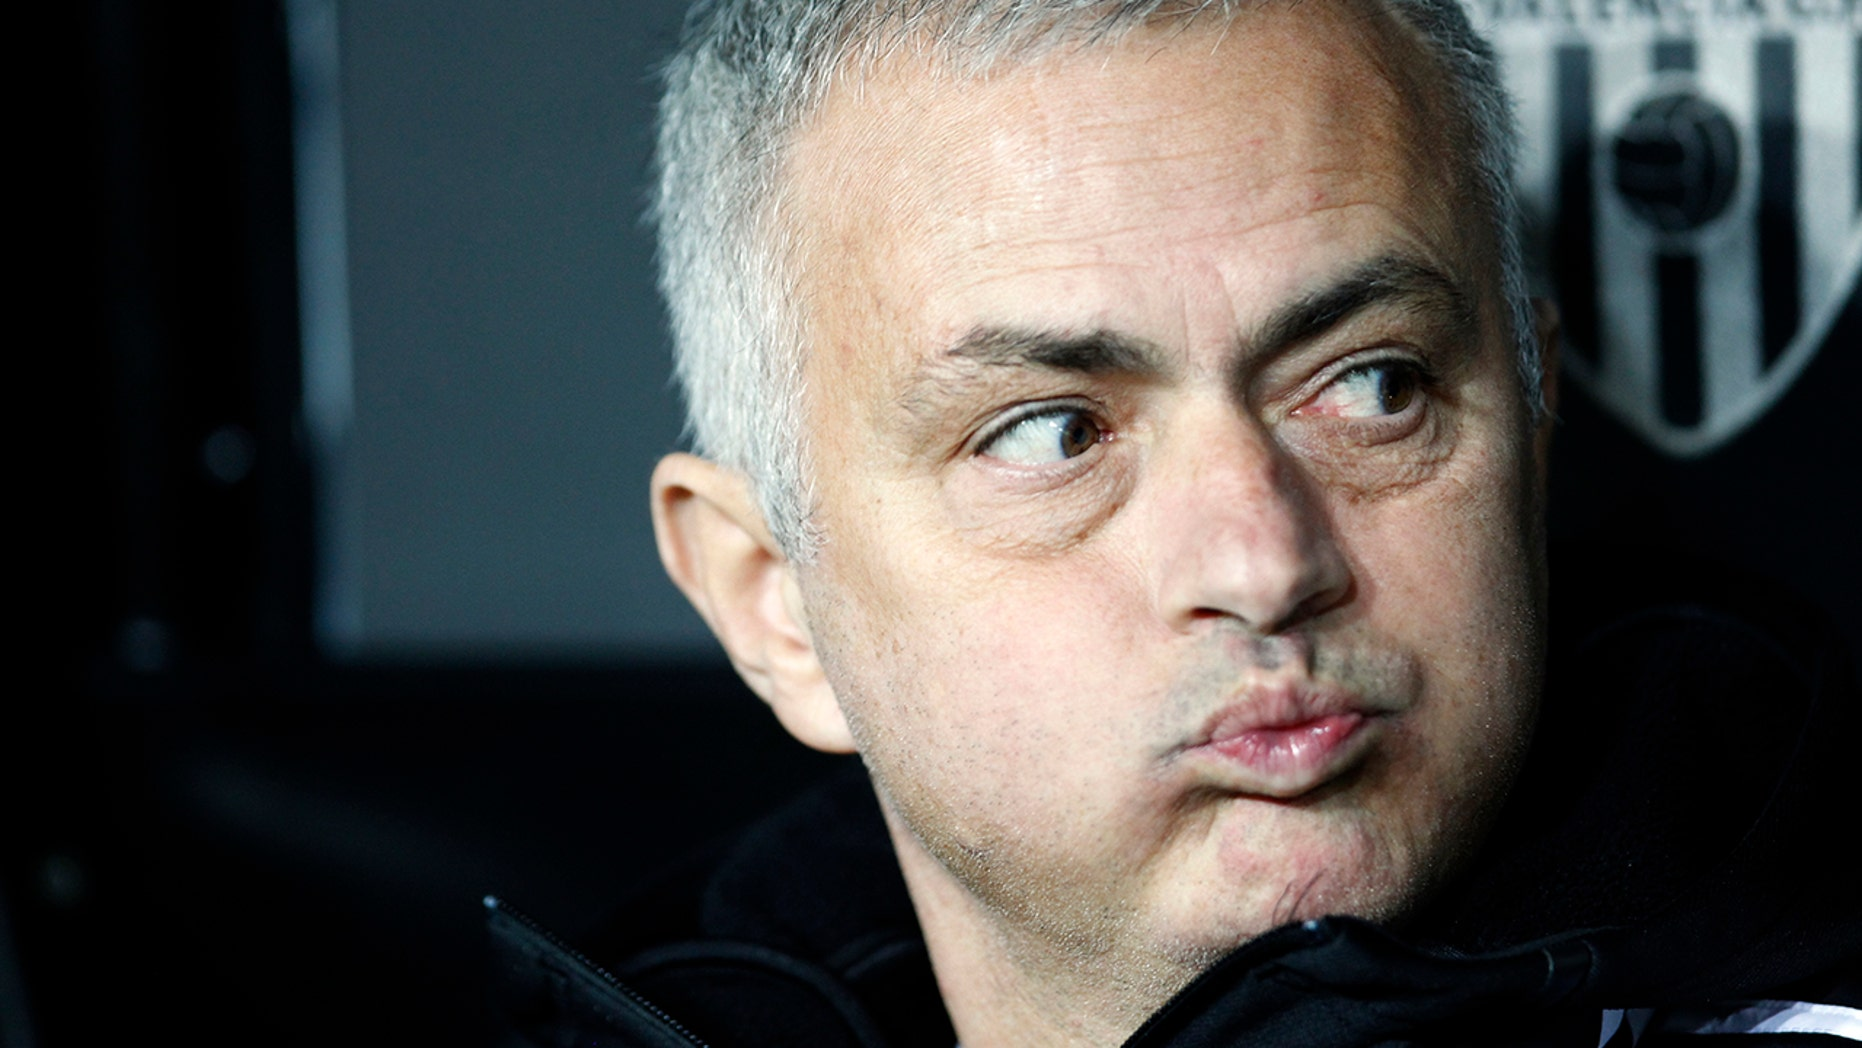 Sacked Manchester United boss Jose Mourinho racked up a $1m hotel bill